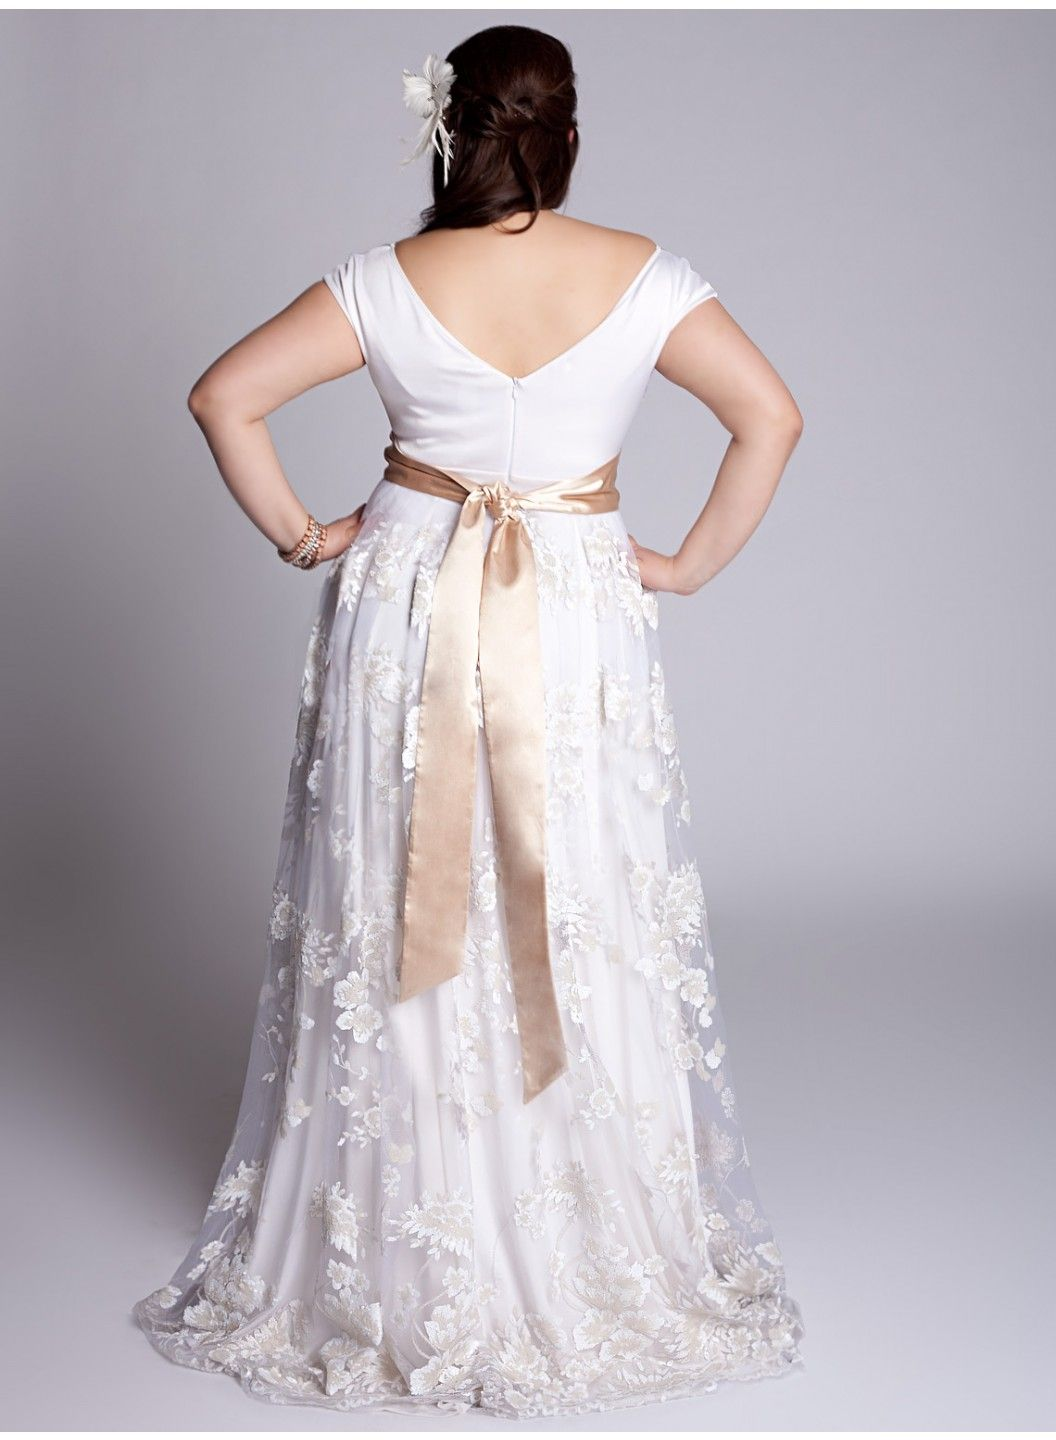 Pin By Cat Crain On Maybe Someday Short Sleeve Wedding Dress Plus Size Wedding Gowns Wedding Dresses Plus Size